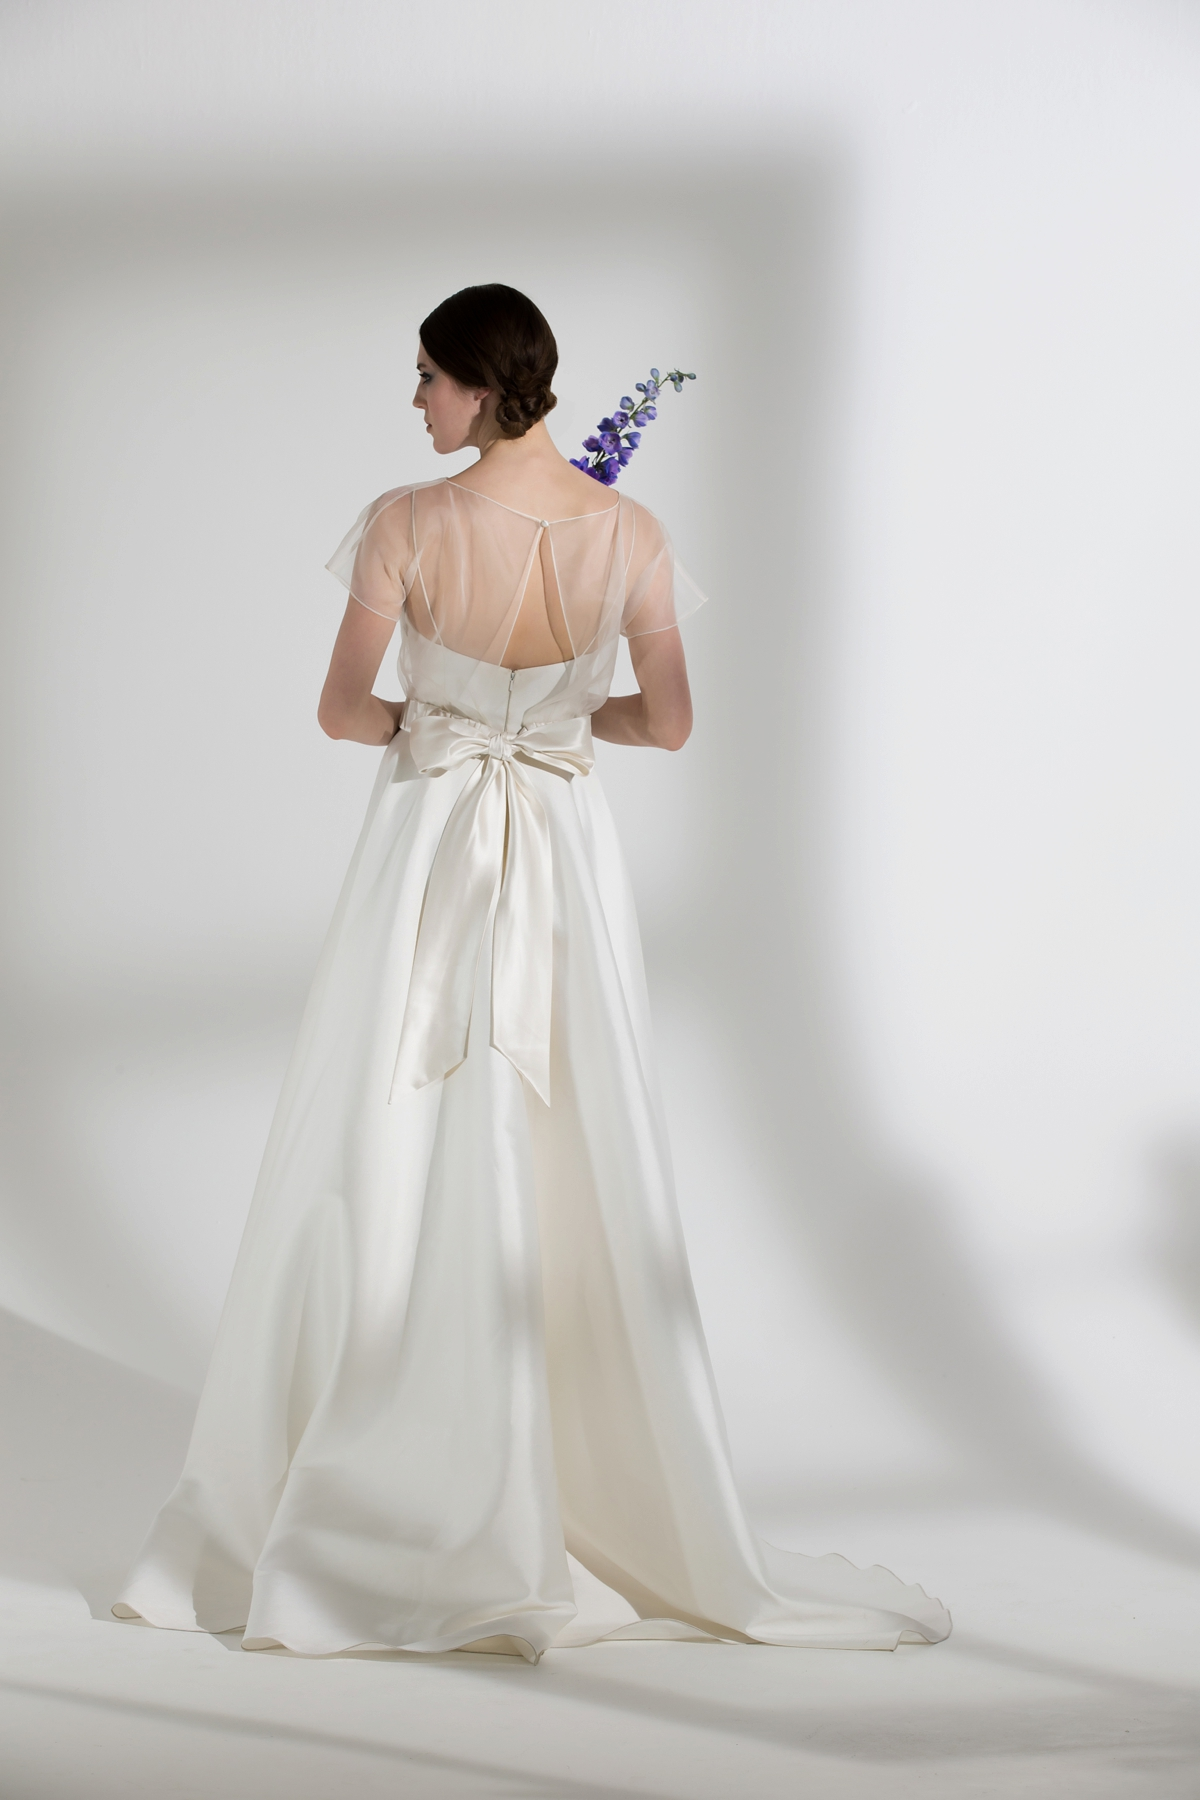 Win £2,500 Toward an Off-The Peg or Bespoke Dress With Halfpenny London (Bridal Fashion Competition Supplier Spotlight )